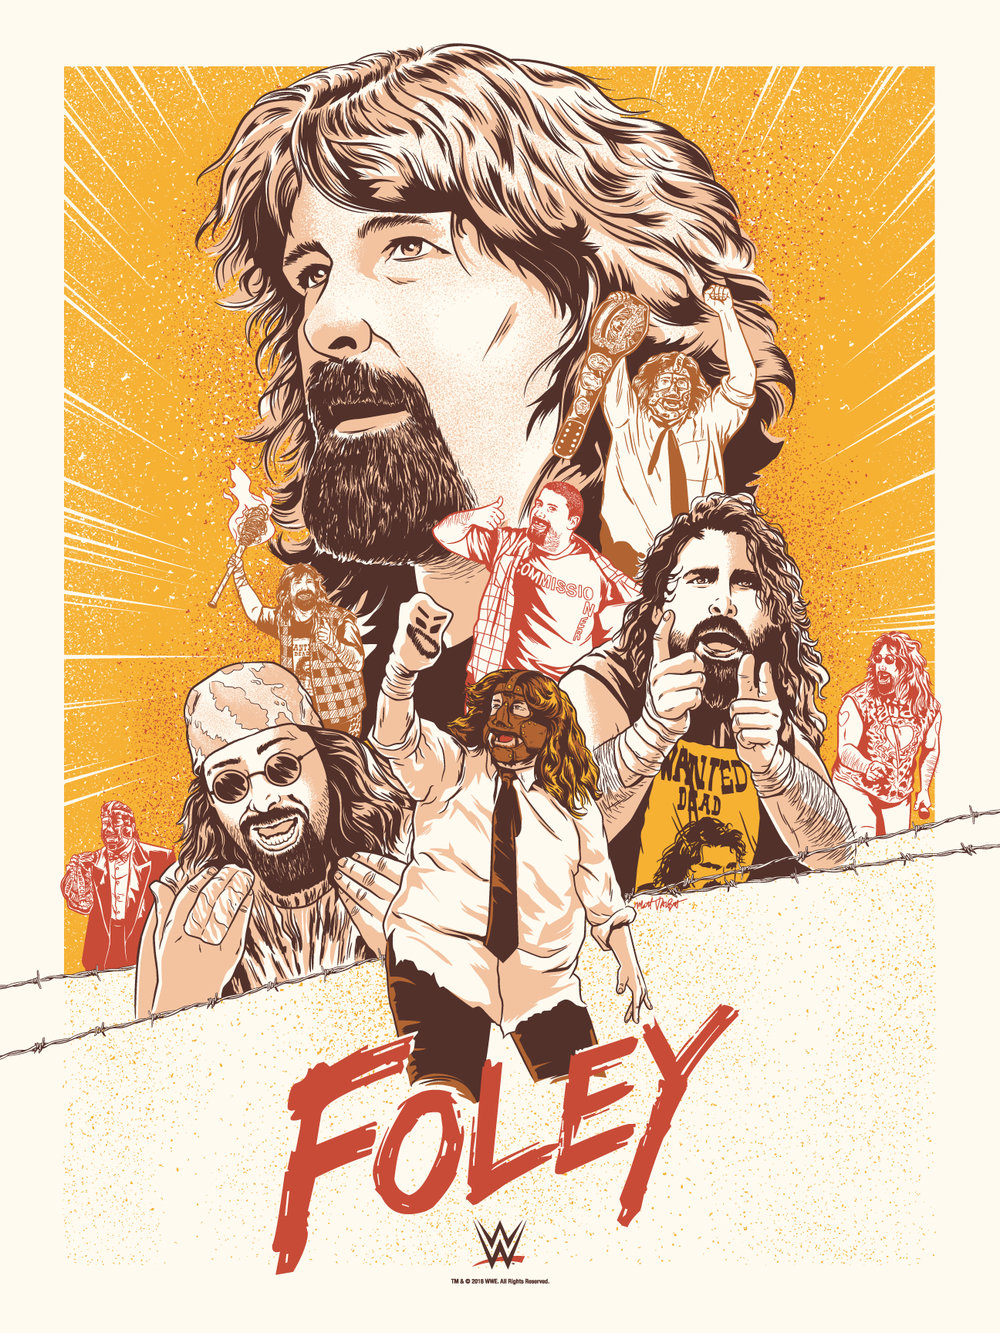 Tribute to Mick Foley - WWE Art Show at Gallery 1988 by Matt Talbot